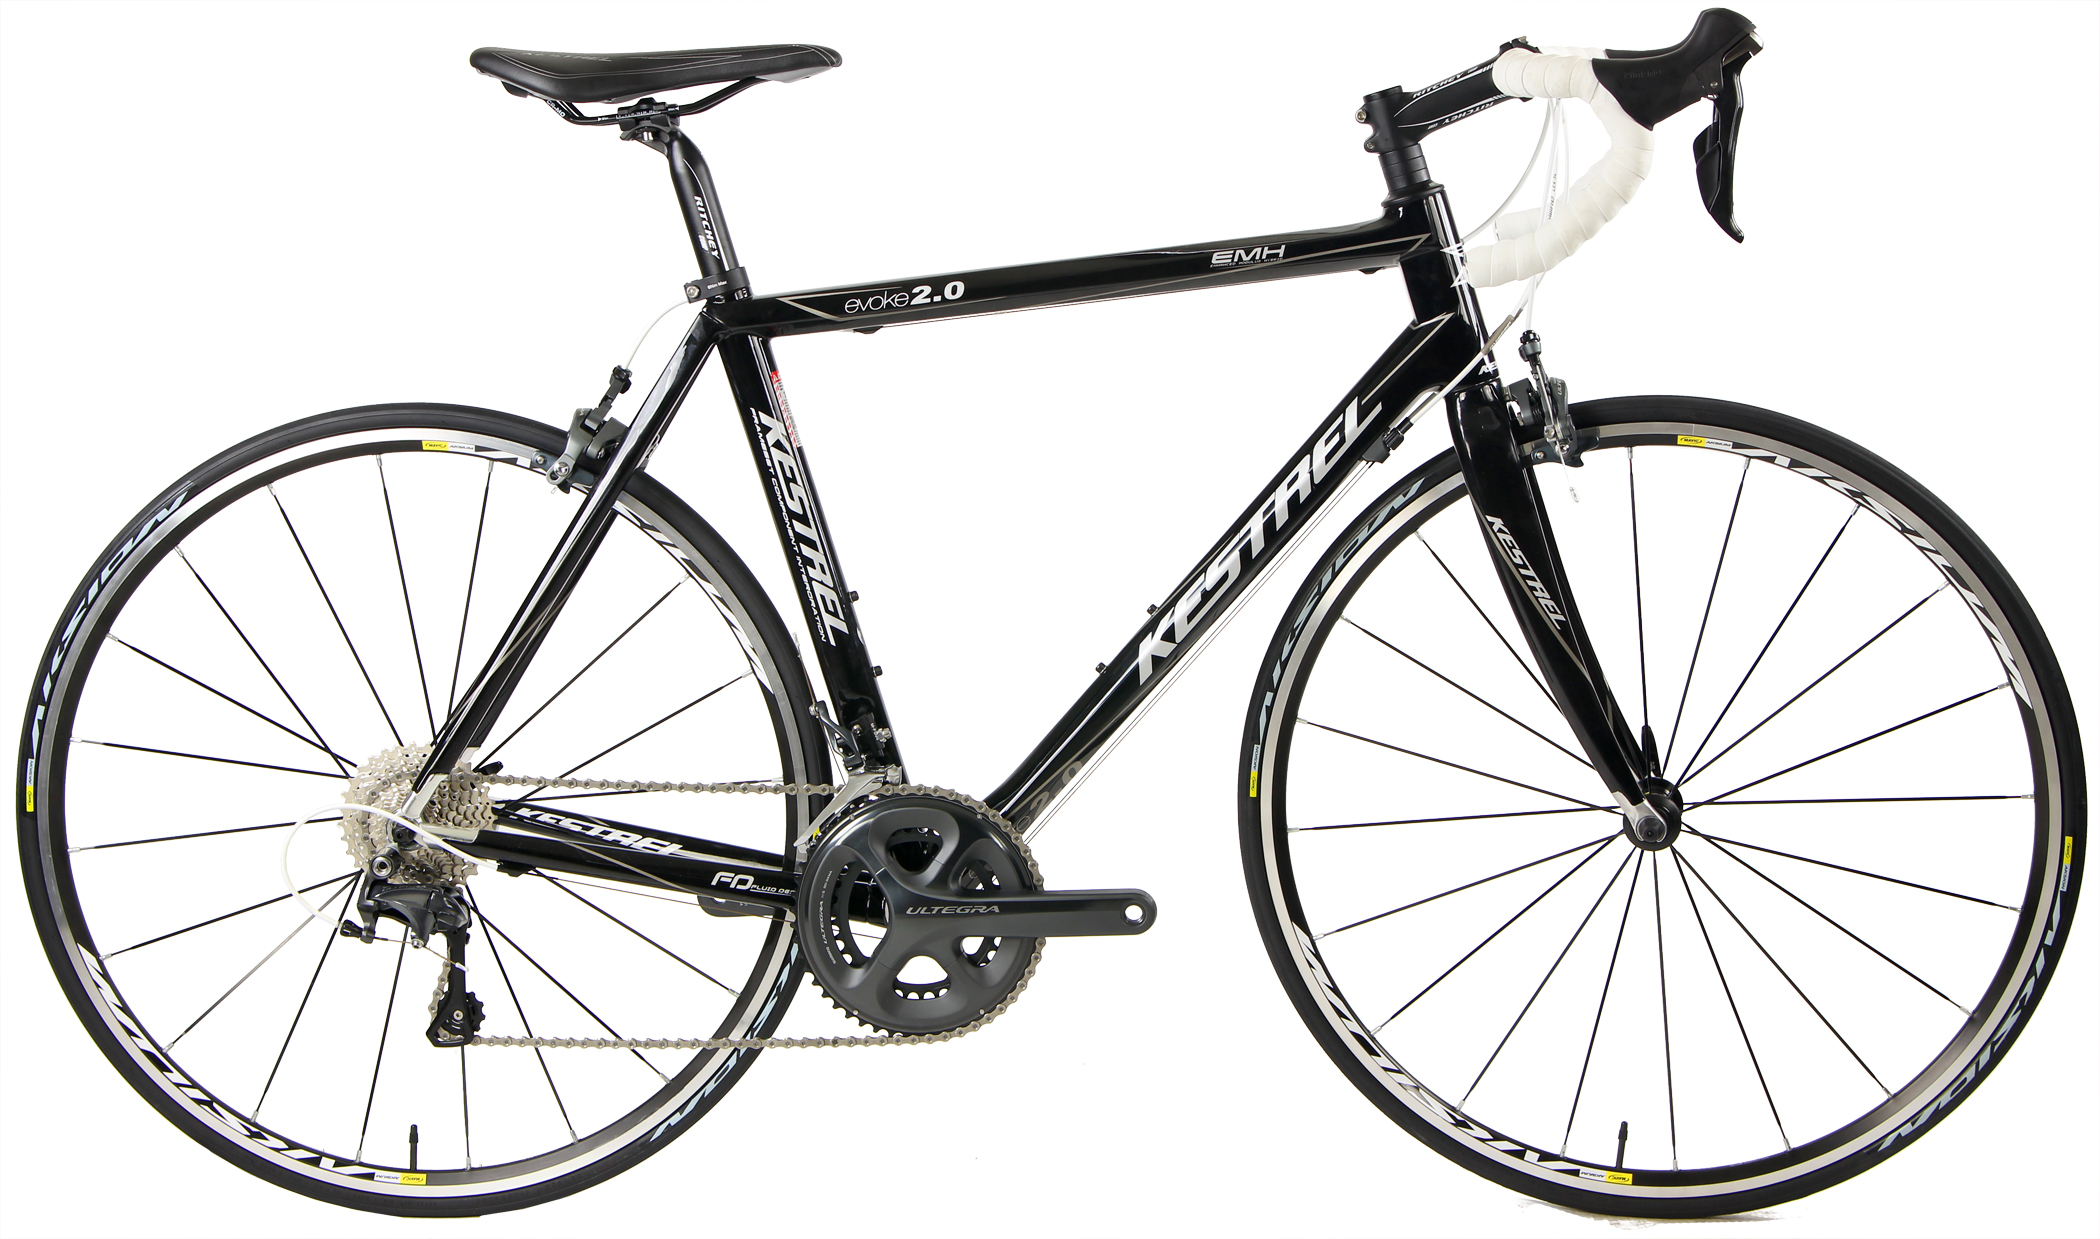 Bikes Kestral Evoke 2.0 Ultegra 6800 Equipped Road Bike Image